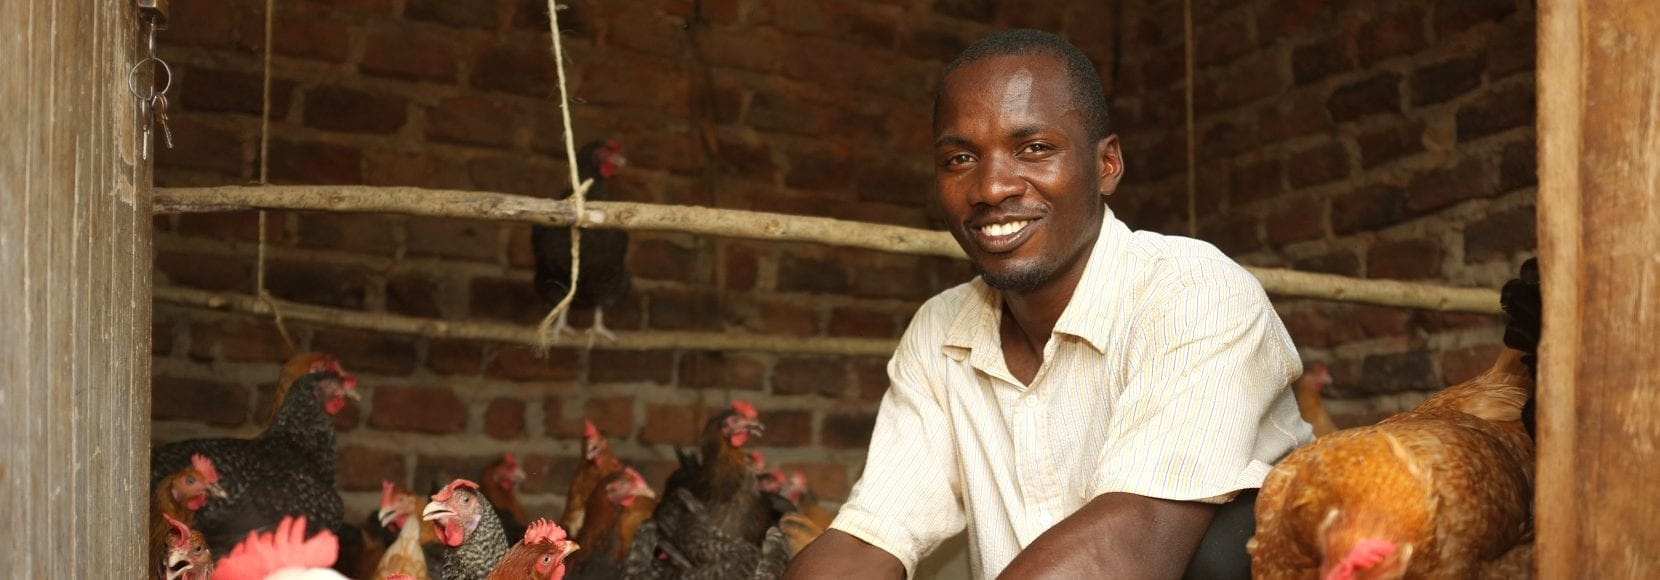 Man smiling while working with chickens